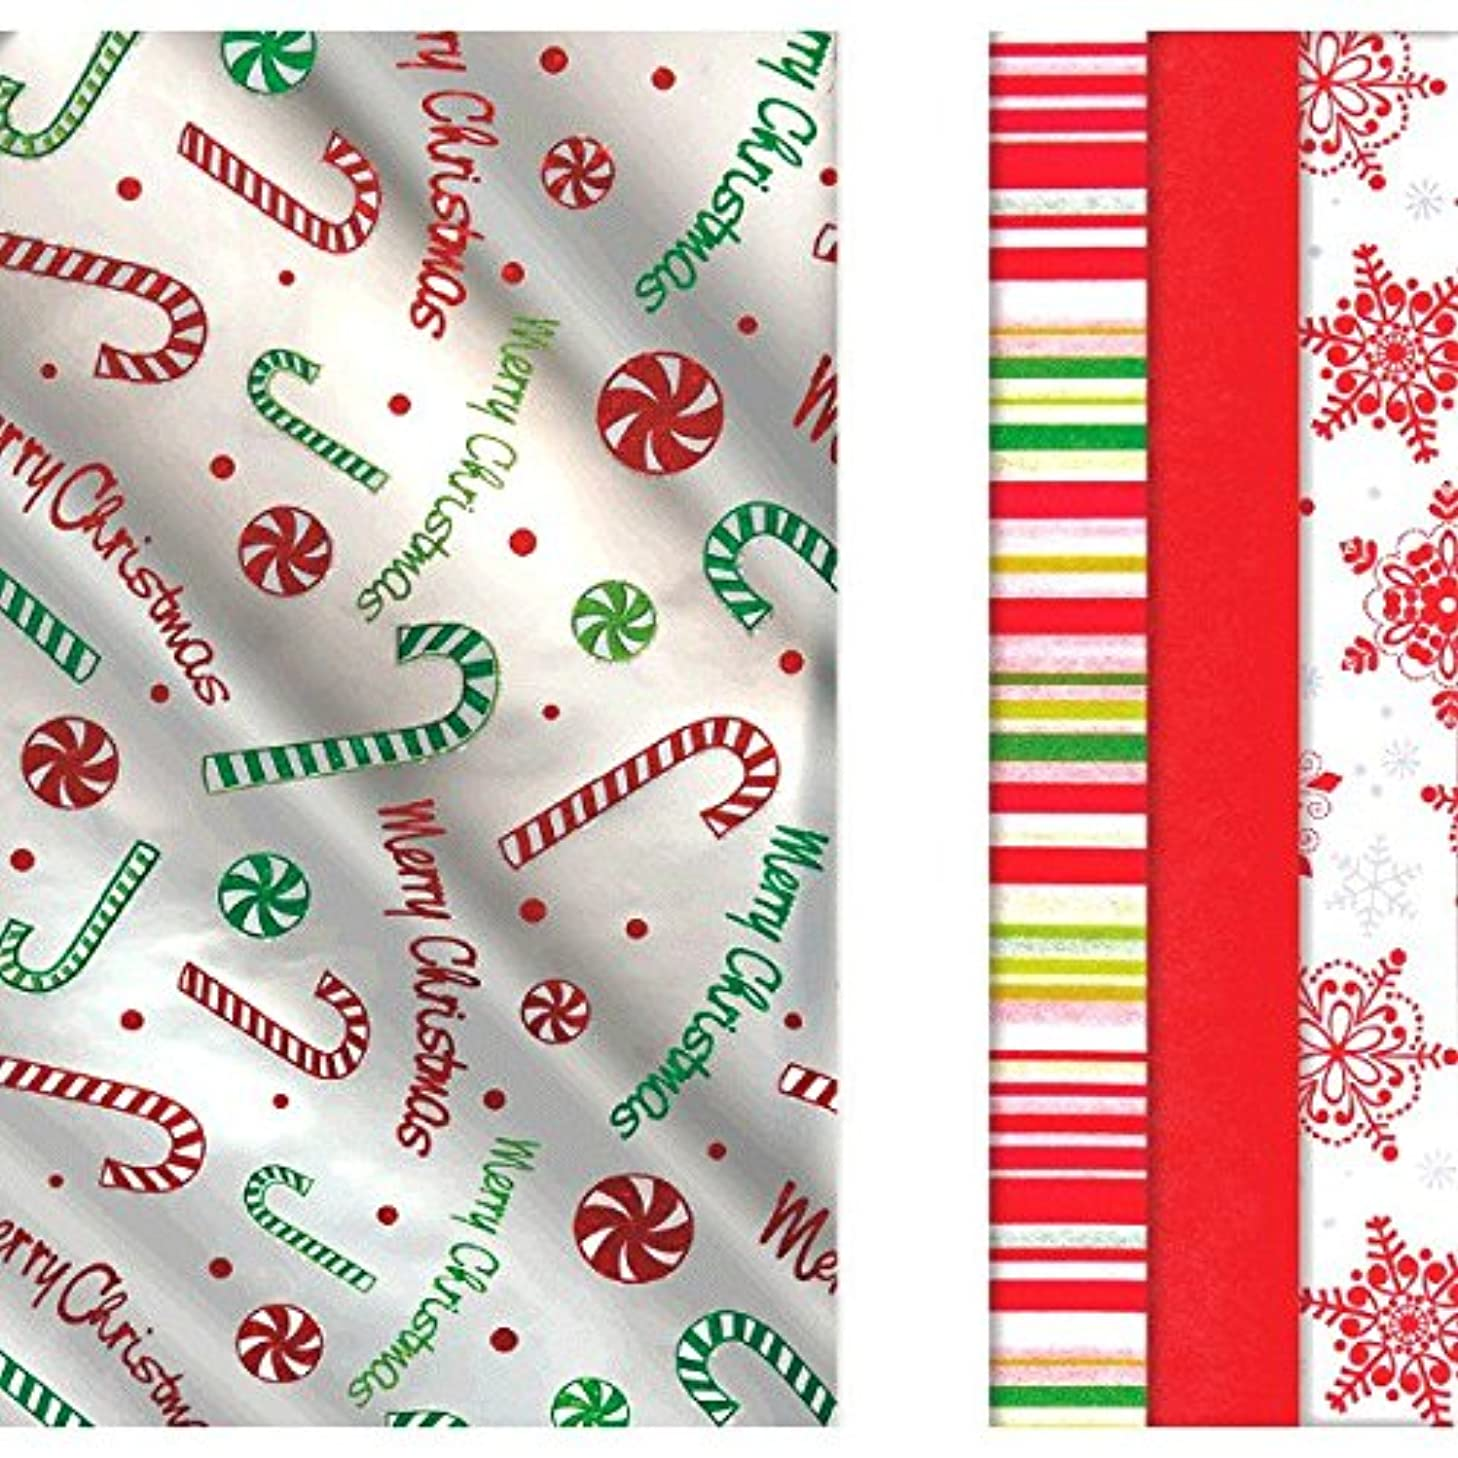 amscan Assorted Christmas Designs Gift Wrappers, 30 Ct. | Party Accessory